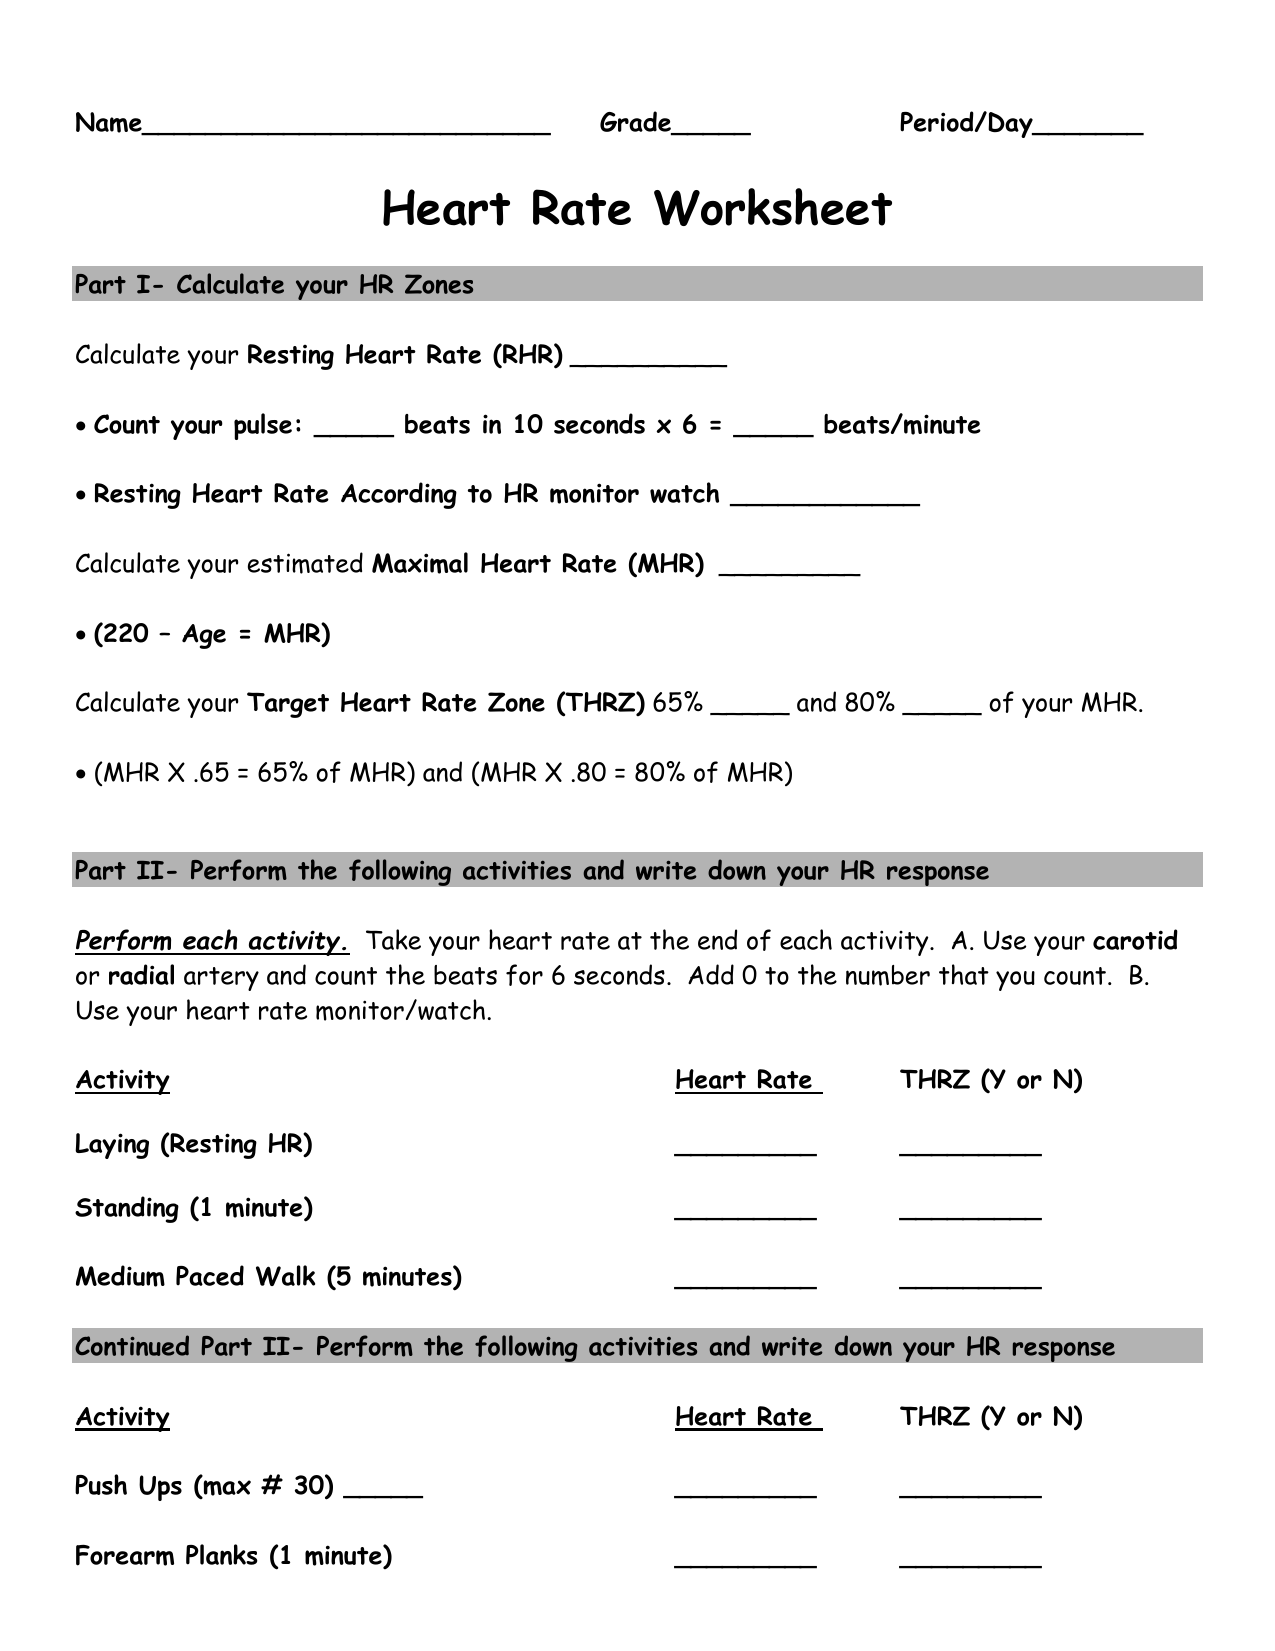 Heart Rate Activity Worksheet - Belle Vernon Area School District ...